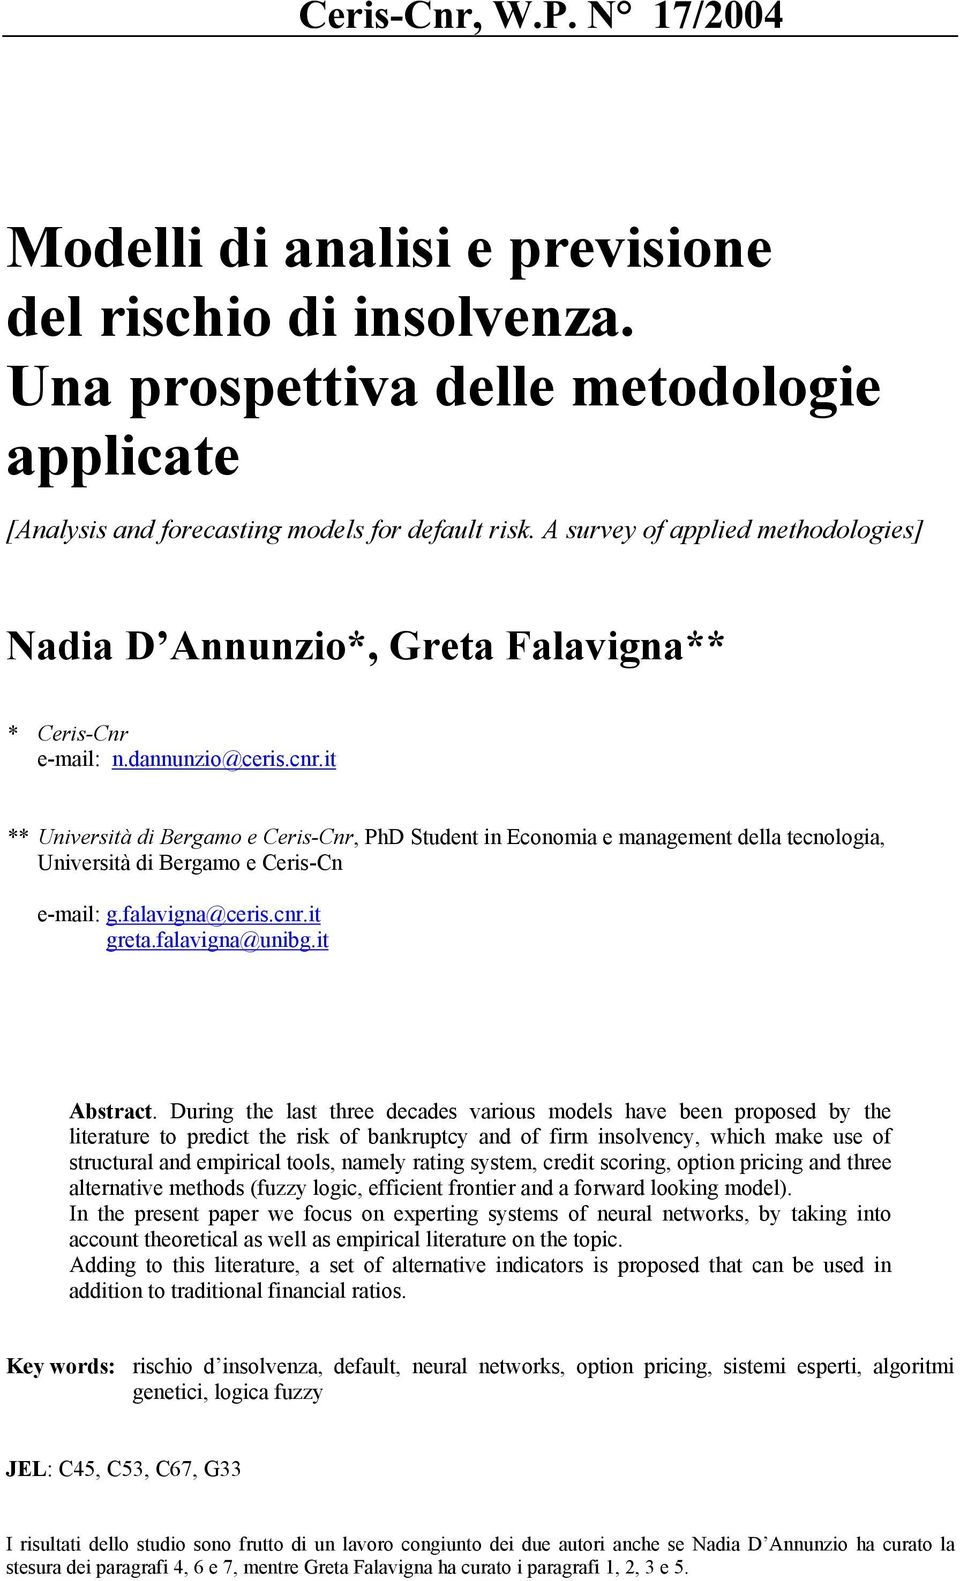 it ** Università di Bergamo e Ceris-Cnr, PhD Student in Economia e management della tecnologia, Università di Bergamo e Ceris-Cn e-mail: g.falavigna@ceris.cnr.it greta.falavigna@unibg.it Abstract.